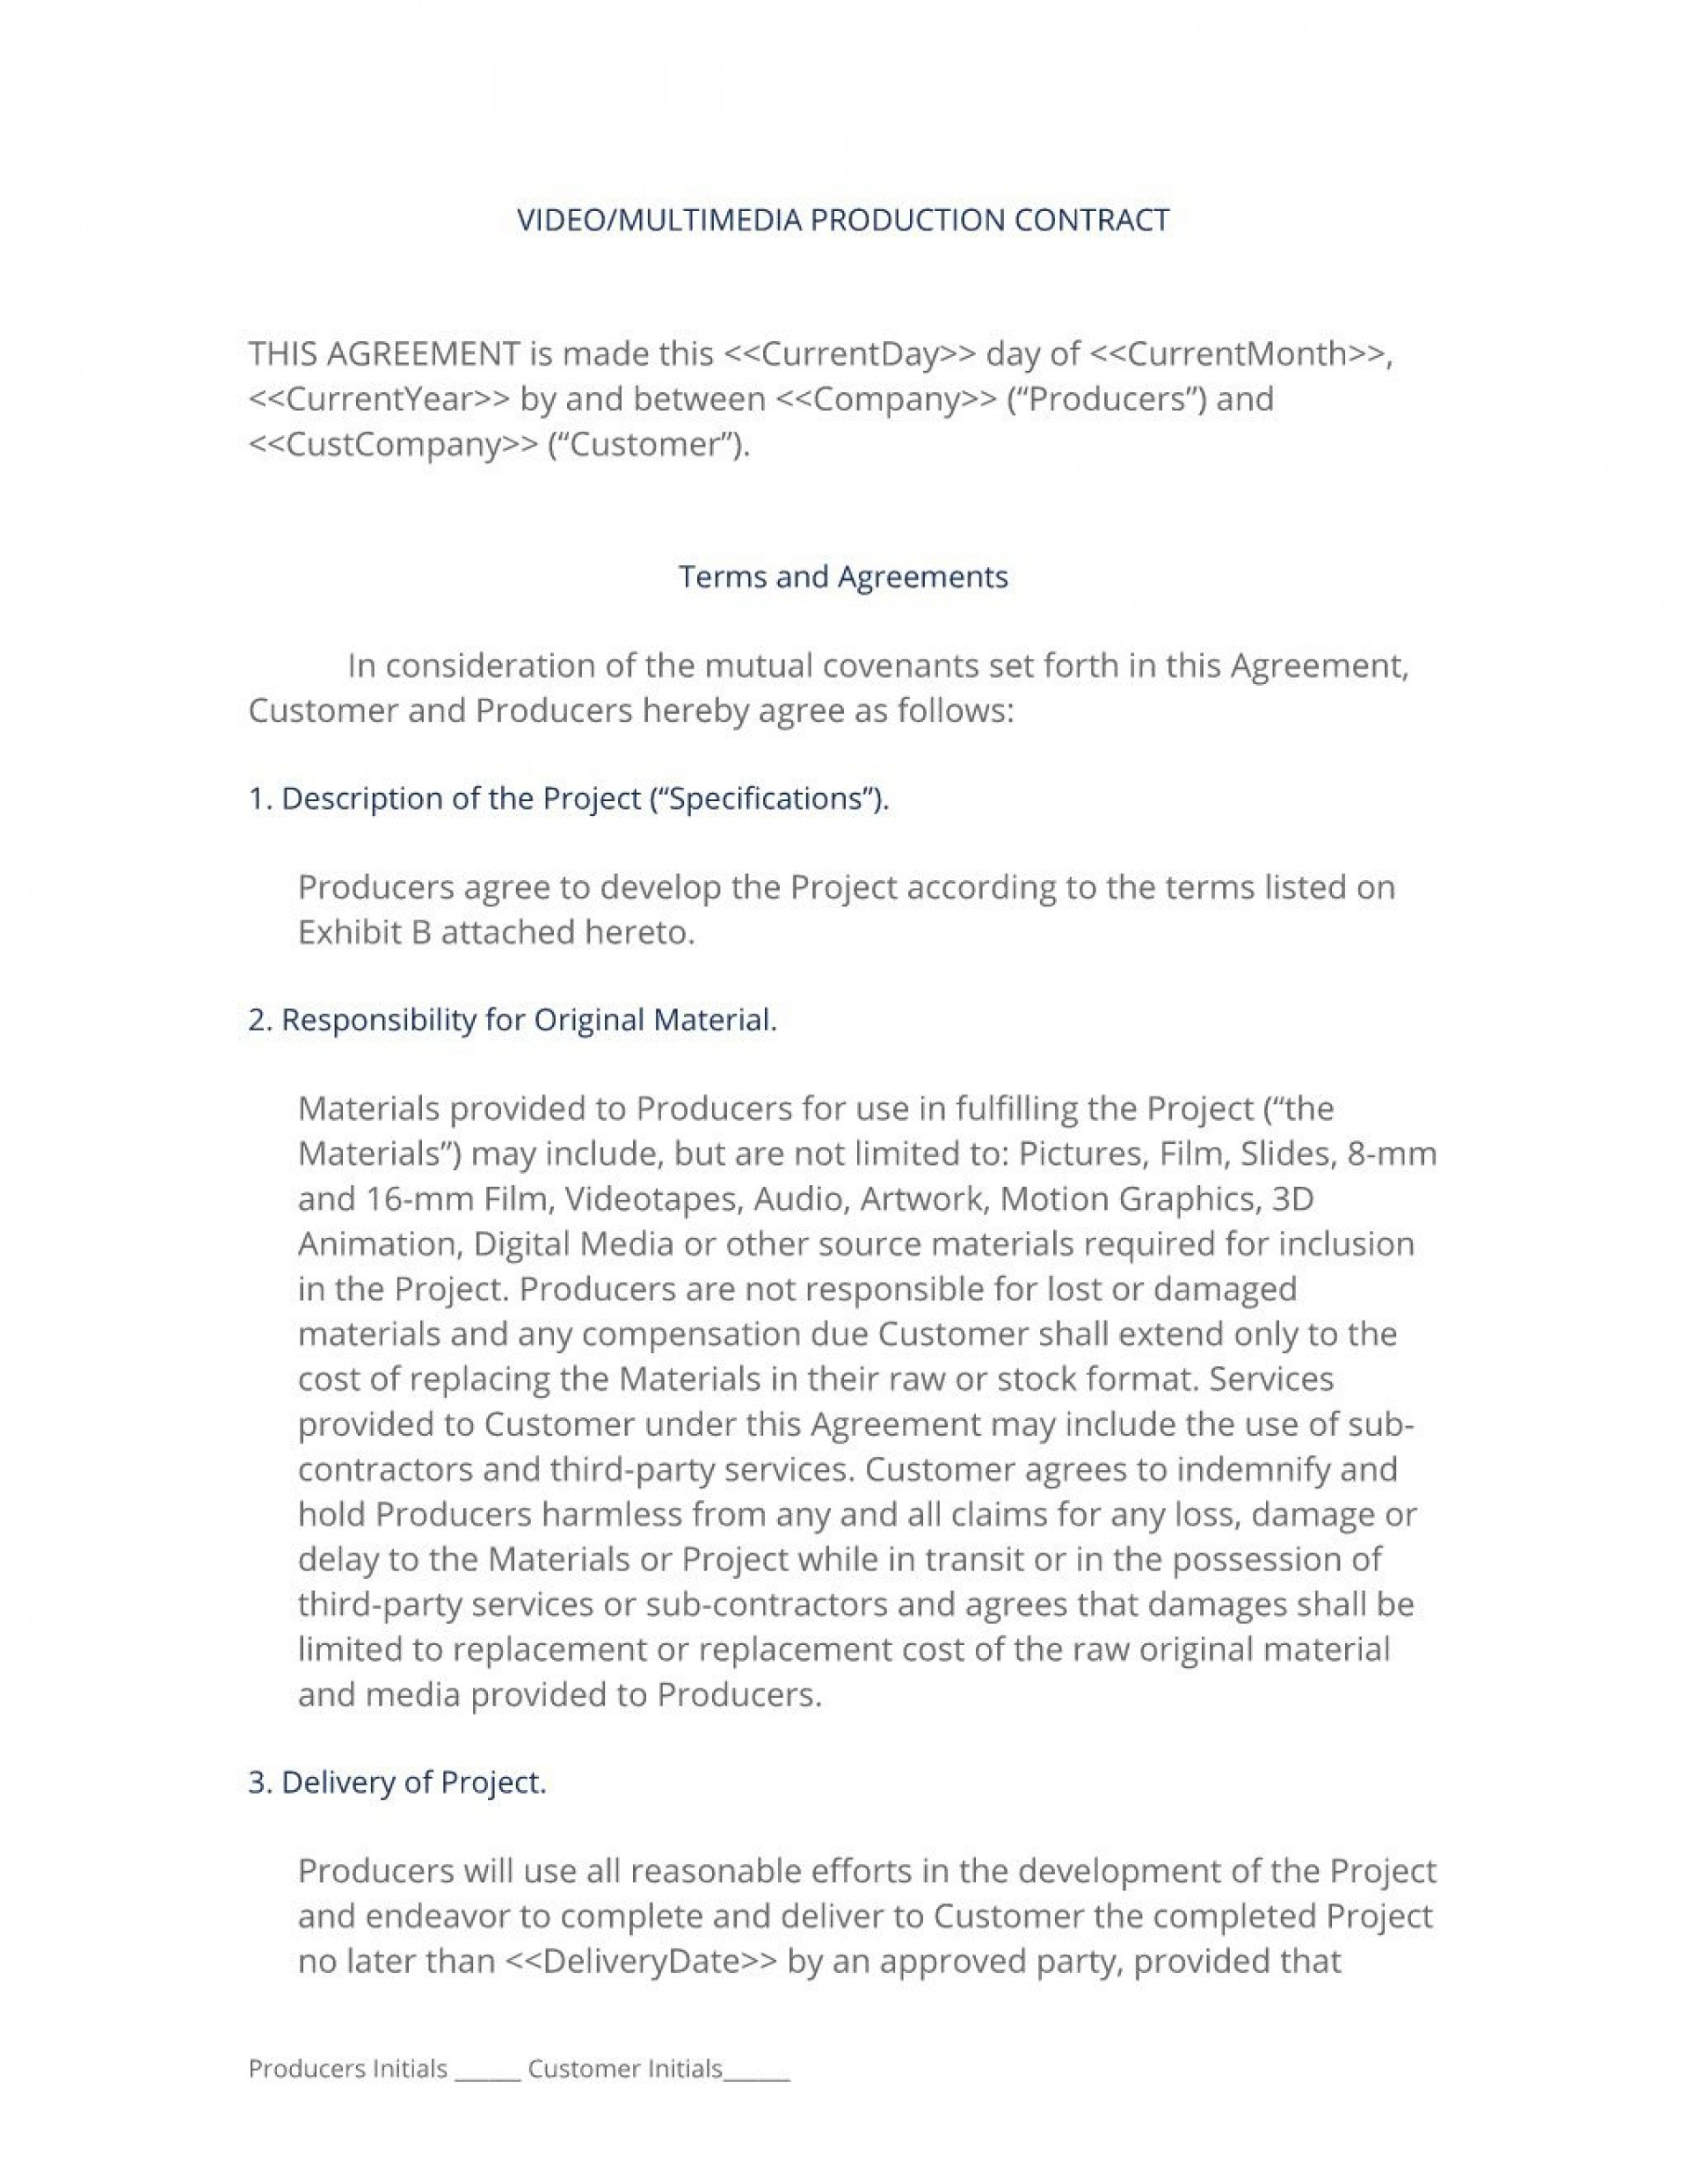 002 Shocking Wedding Videographer Contract Template High Definition  Videography Pdf1920